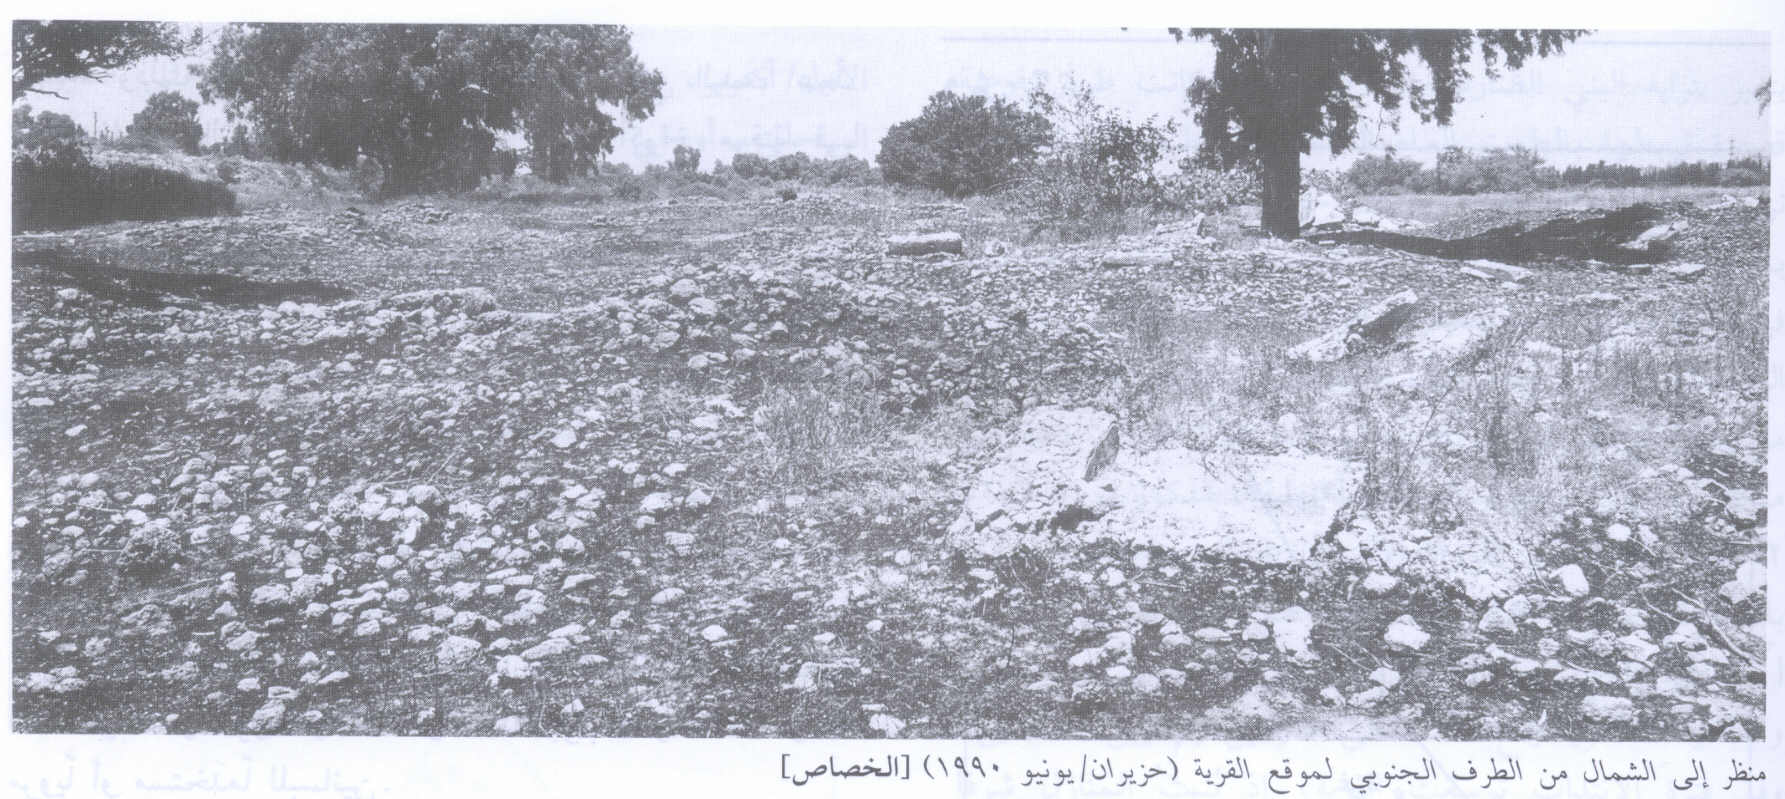 al-Khisas - خربة الخِصاص : View Of The Destroyed Village And It's Rubble In 1990